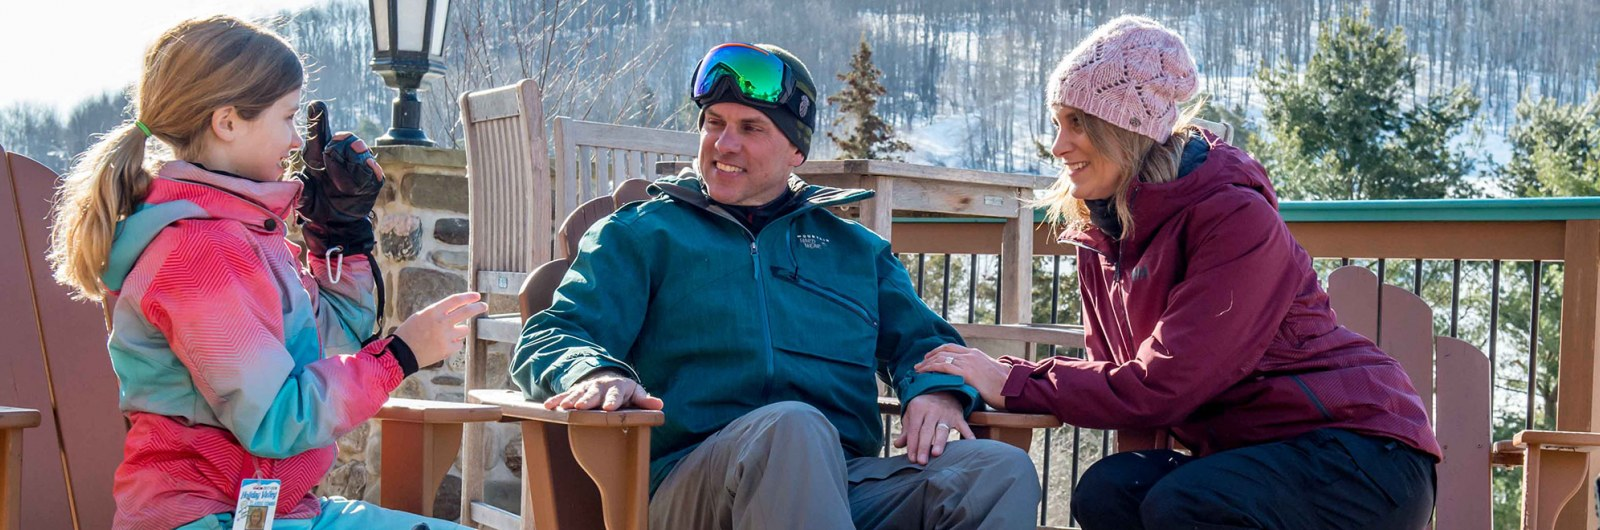 Parents and daughter sitting in adirondack chairs at ski resort on a winter day